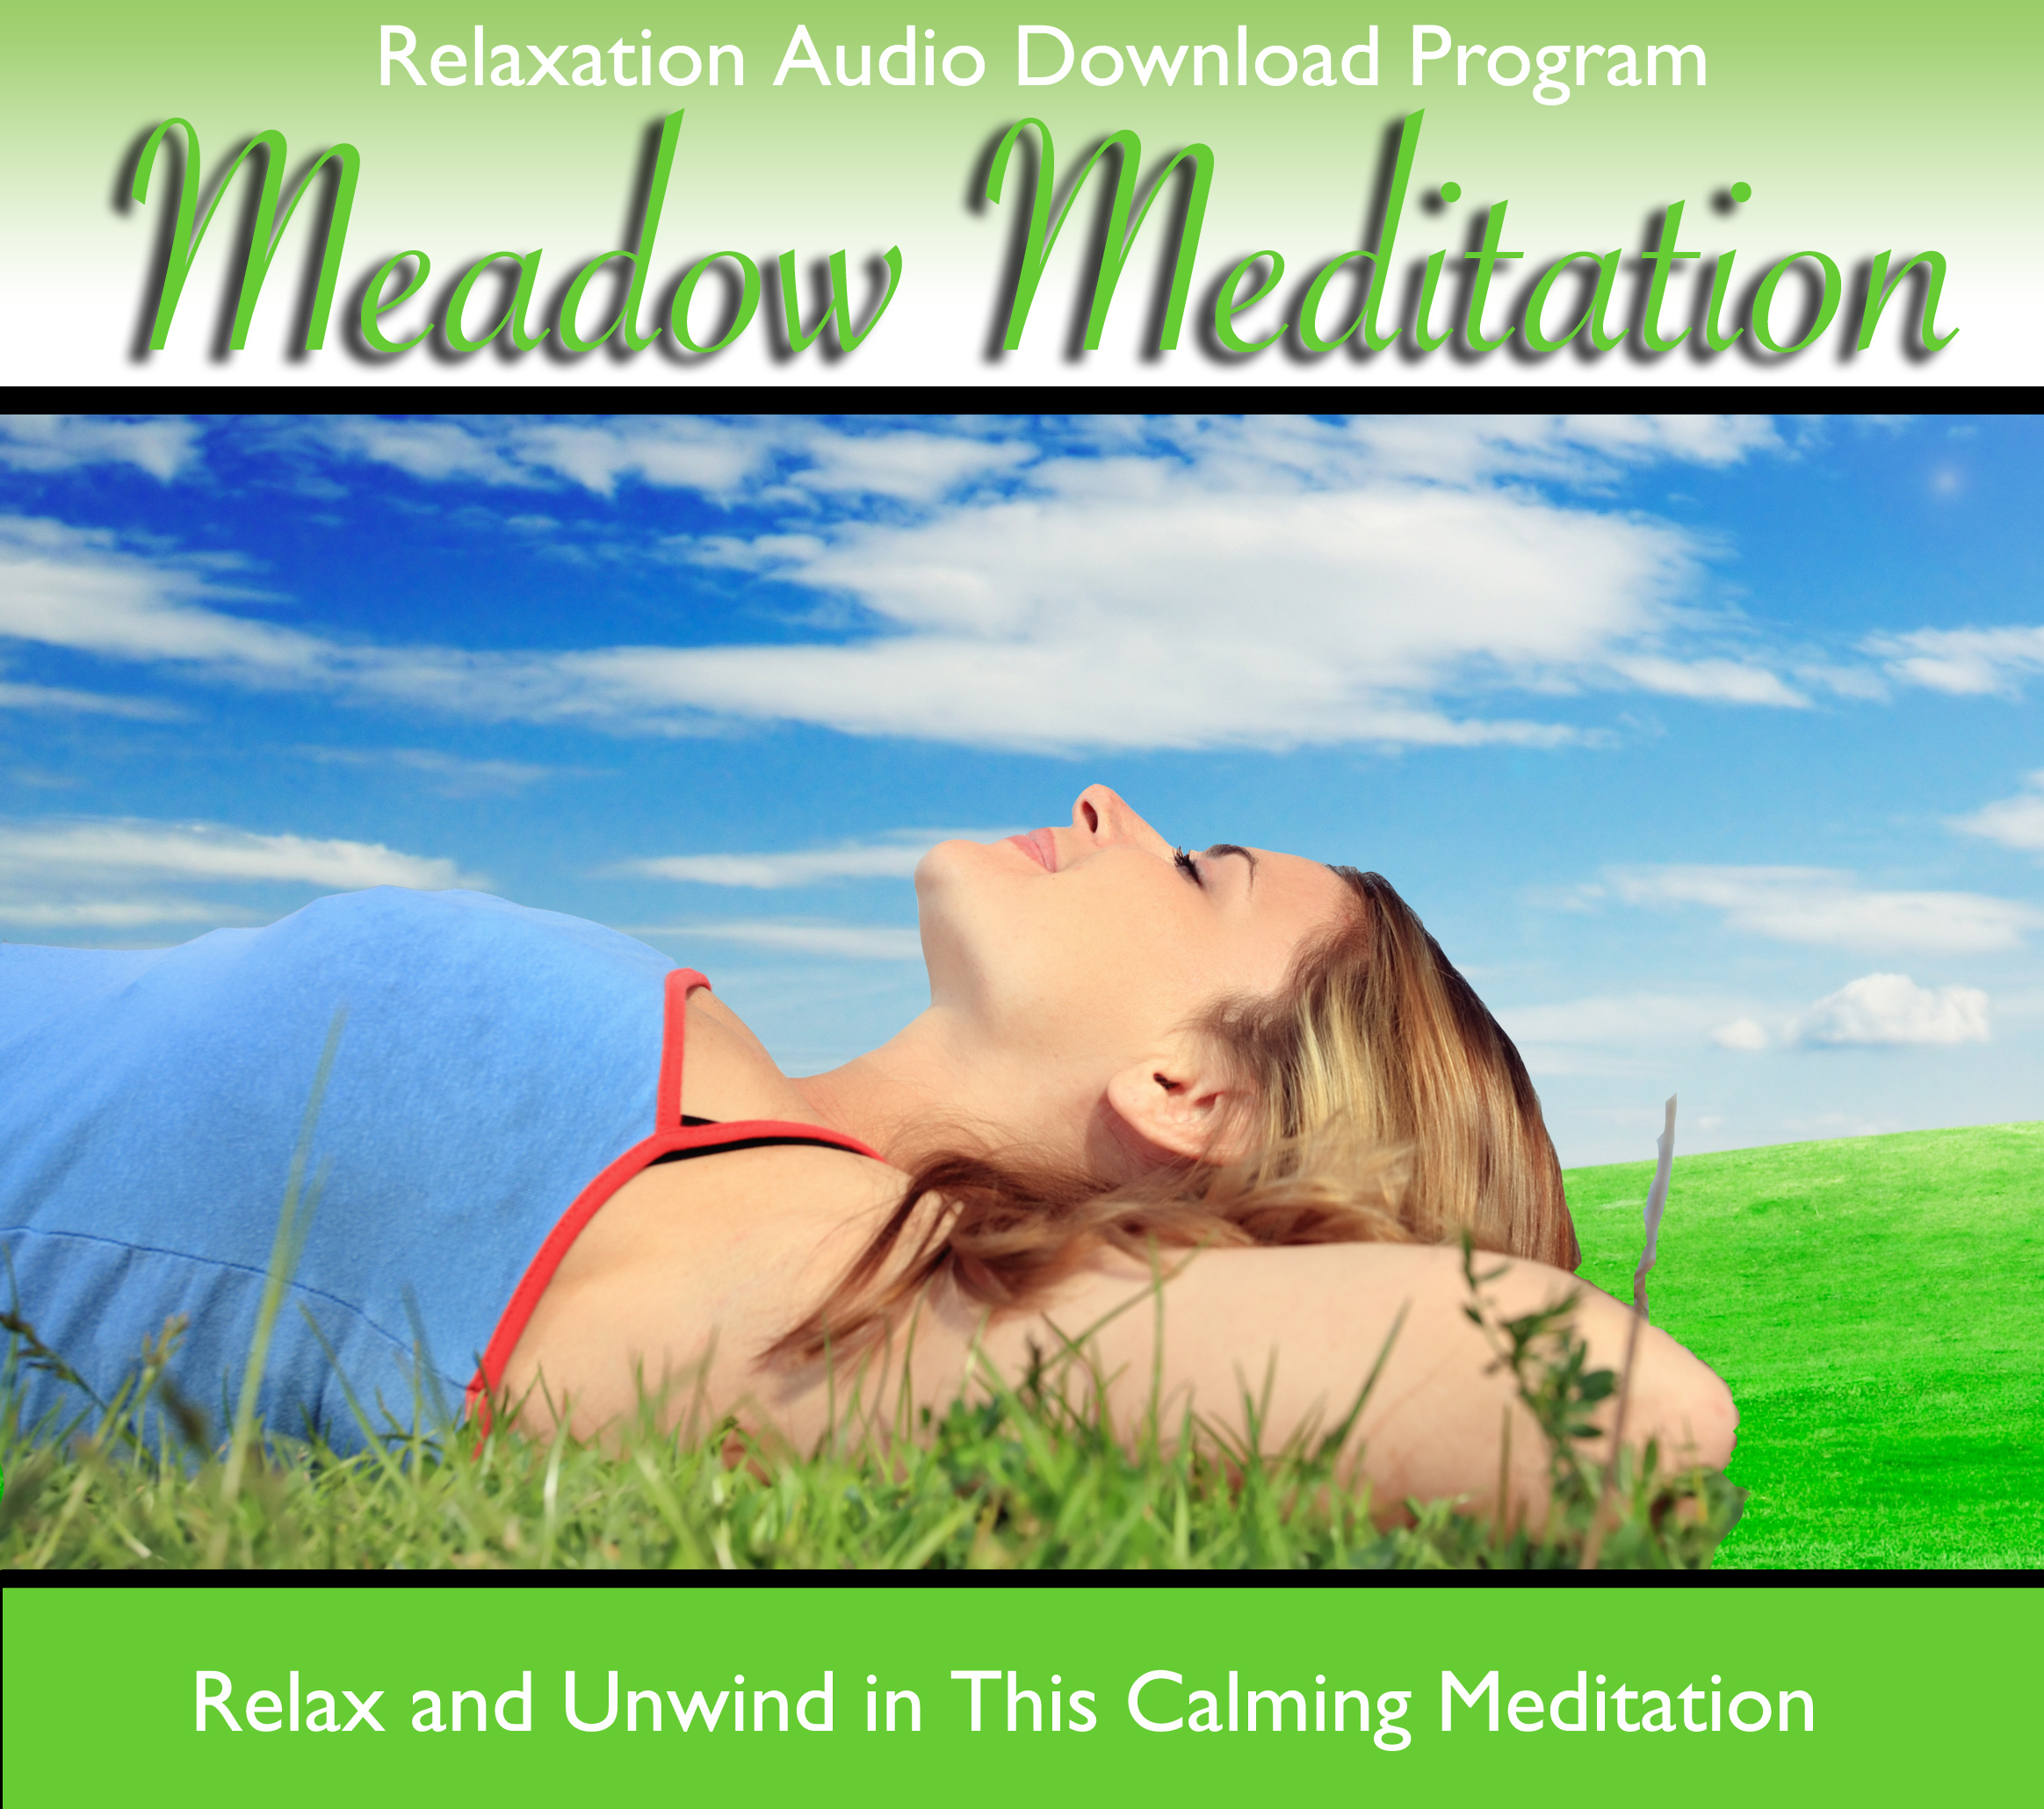 Meadow Meditation - Relax and Refresh Download Audio Set ...